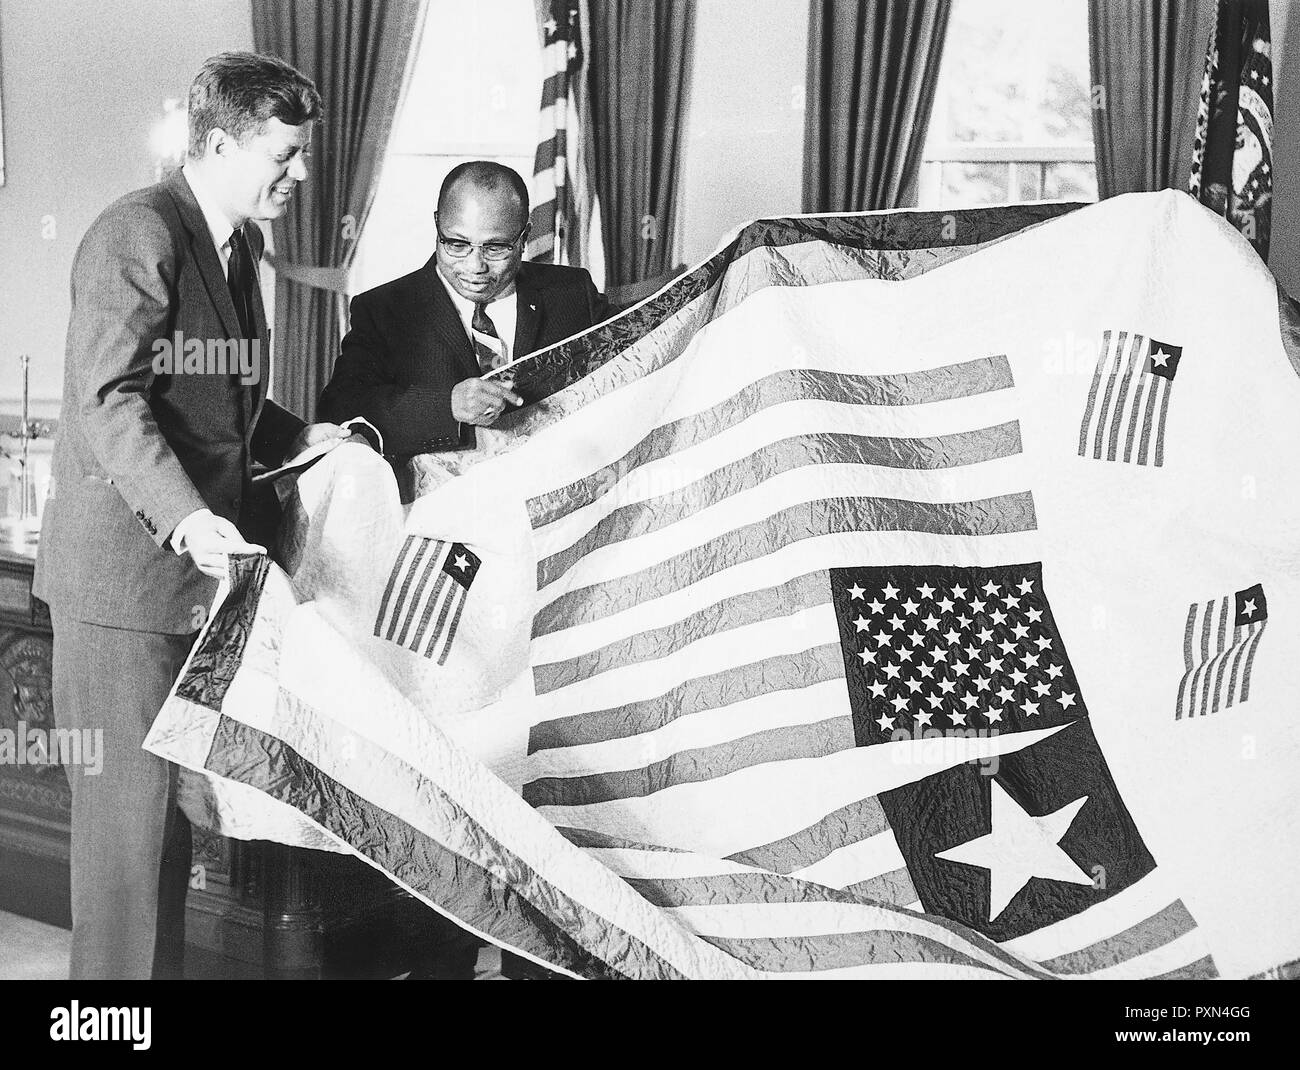 john fitzgerald kennedy, william tolbert - Stock Image